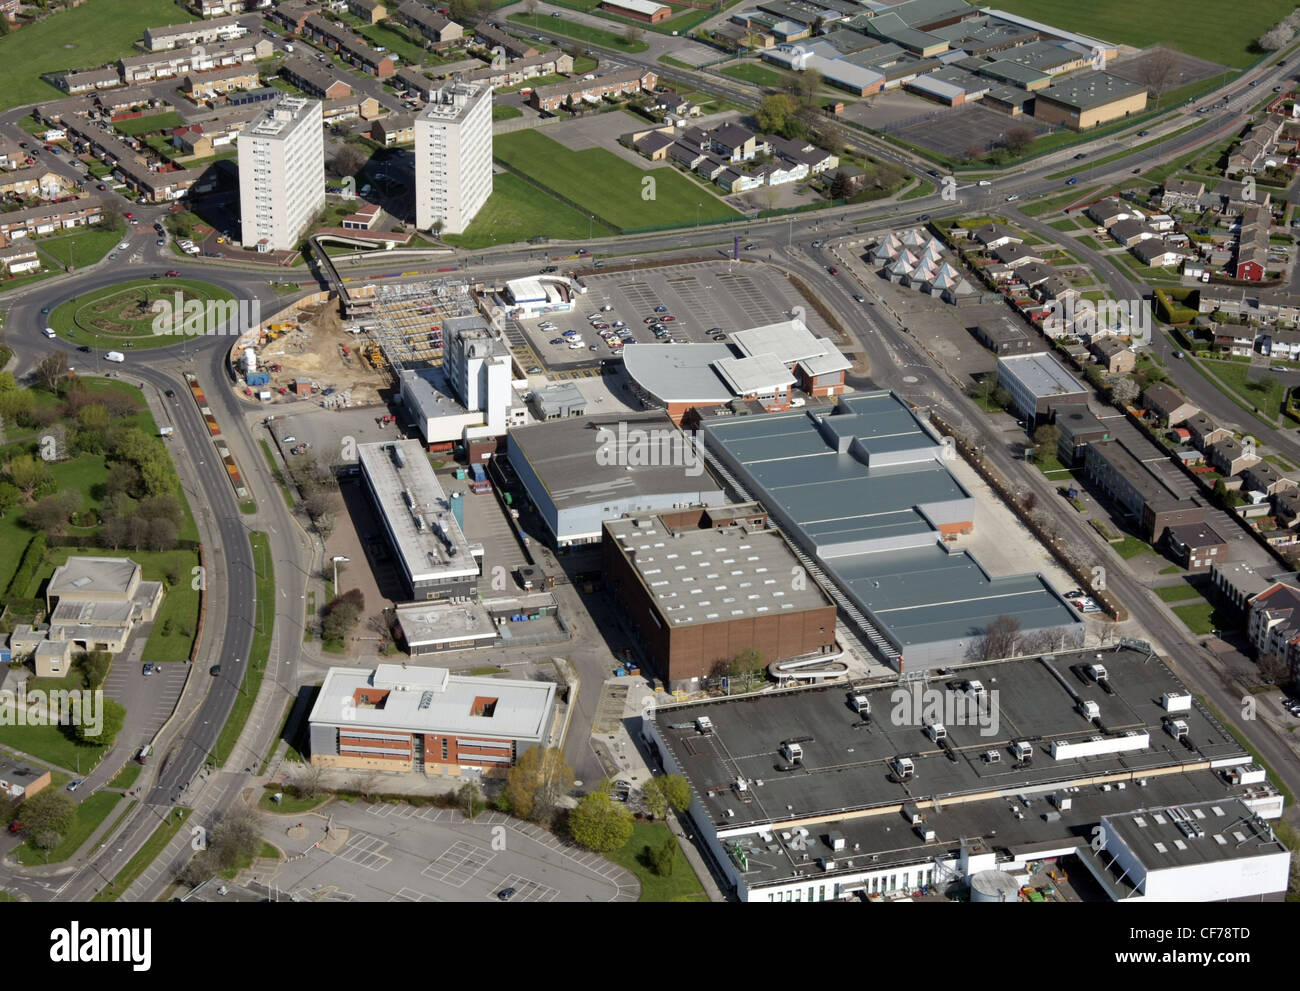 Aerial view of Thornaby-on-Tees town centre - Stock Image